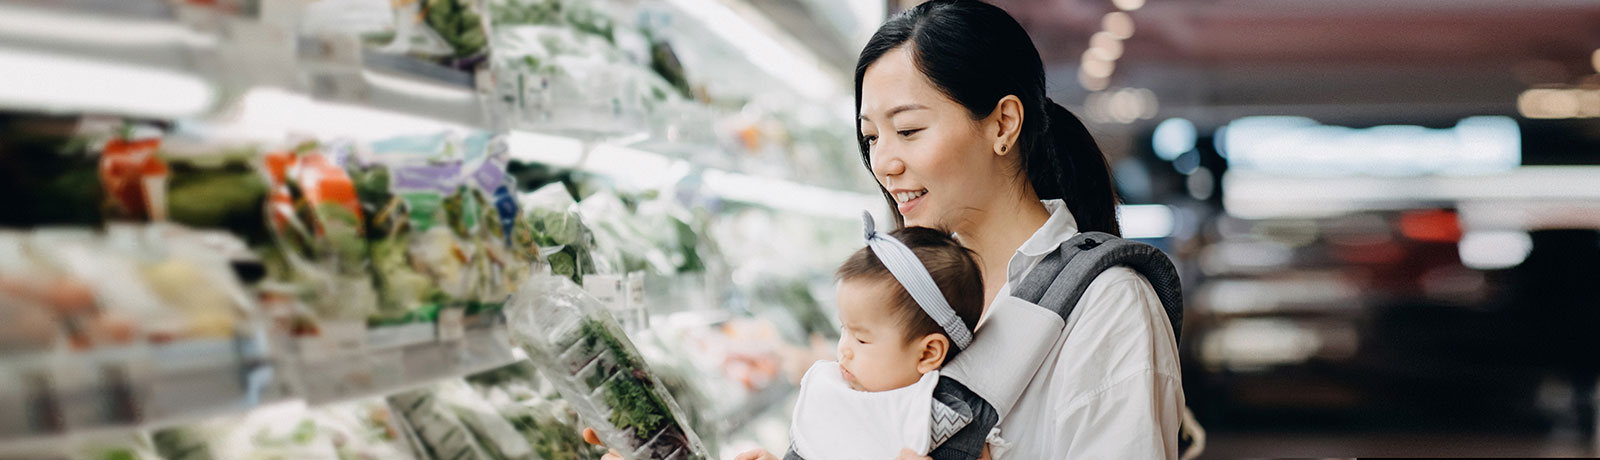 a woman is holding her baby and doing shopping